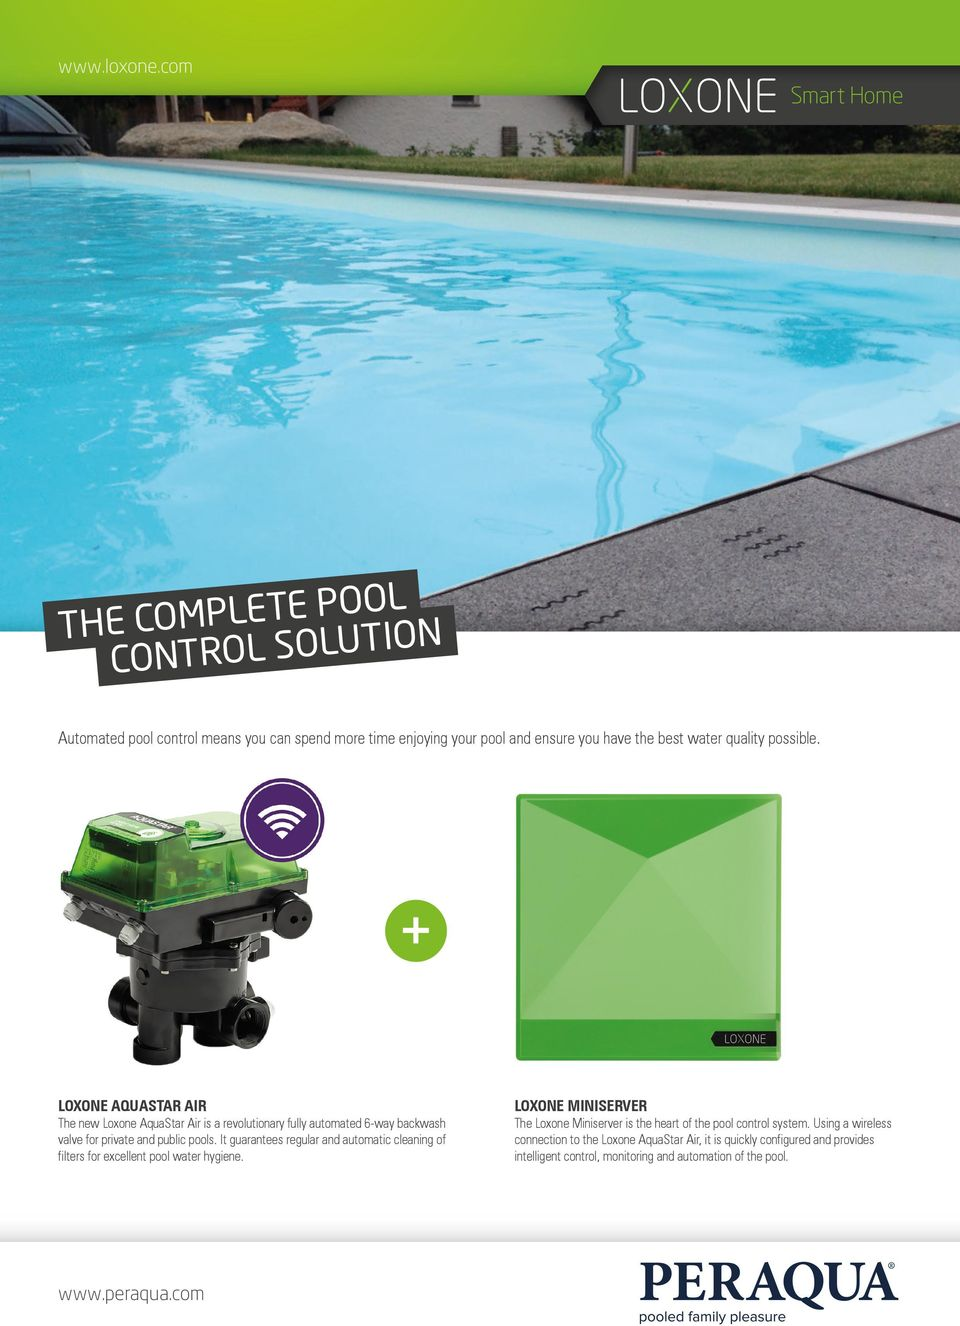 water quality possible. LOXONE AQUASTAR AIR The new Loxone AquaStar Air is a revolutionary fully automated 6-way backwash valve for private and public pools.